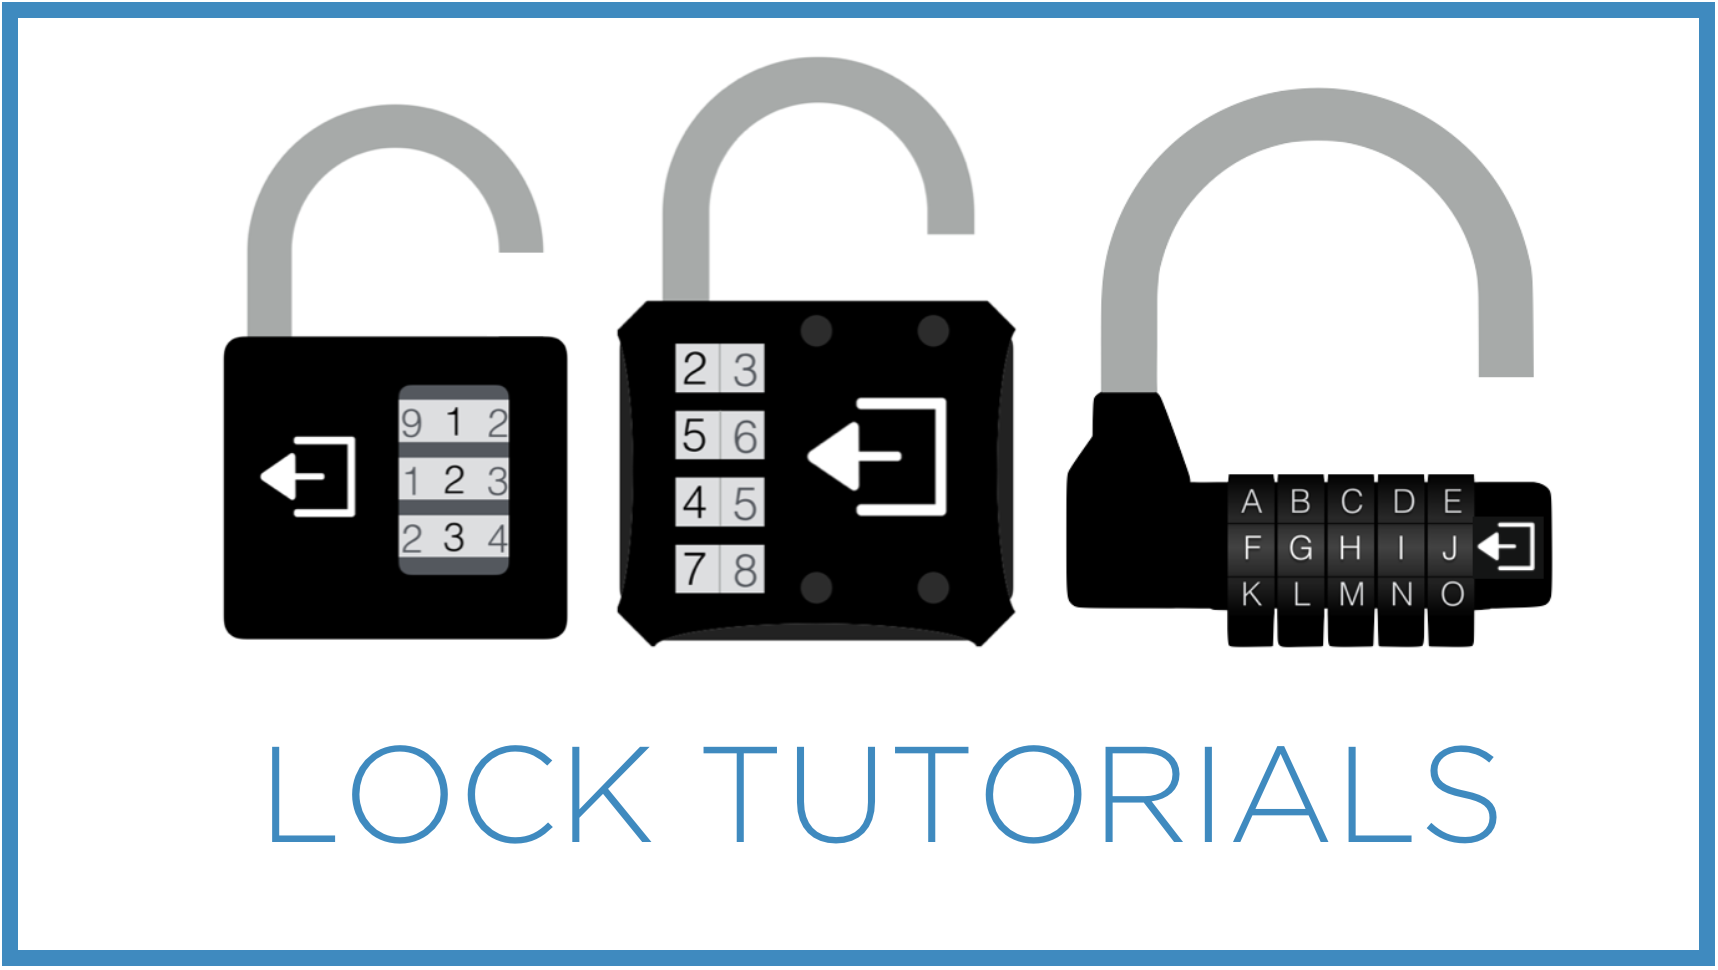 Learn how to set / reset your Breakout EDU locks by watching videos and reading helpful tips.